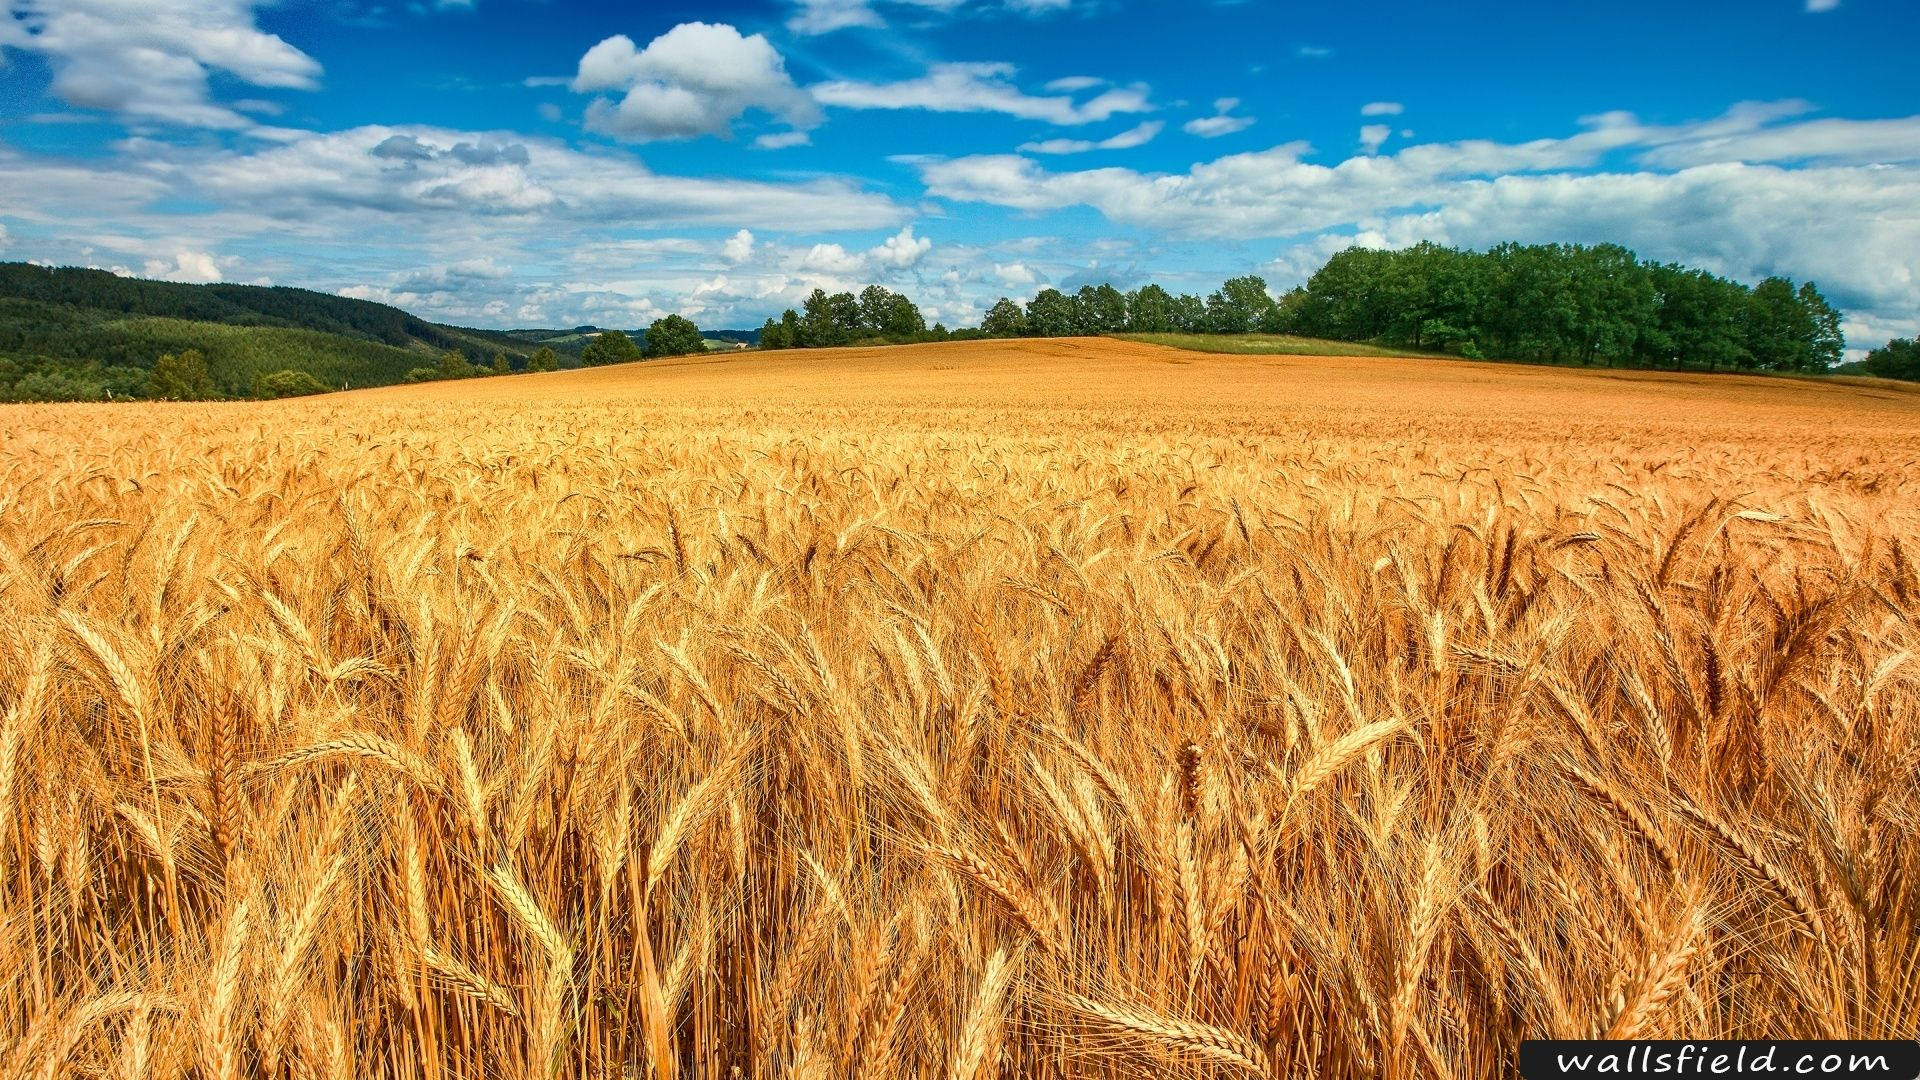 You Can View Download And Comment On Golden Wheat Field Free Hd Wallpapers For Your Desktop Backgrounds Mobile And Tablet In Different Resolutions